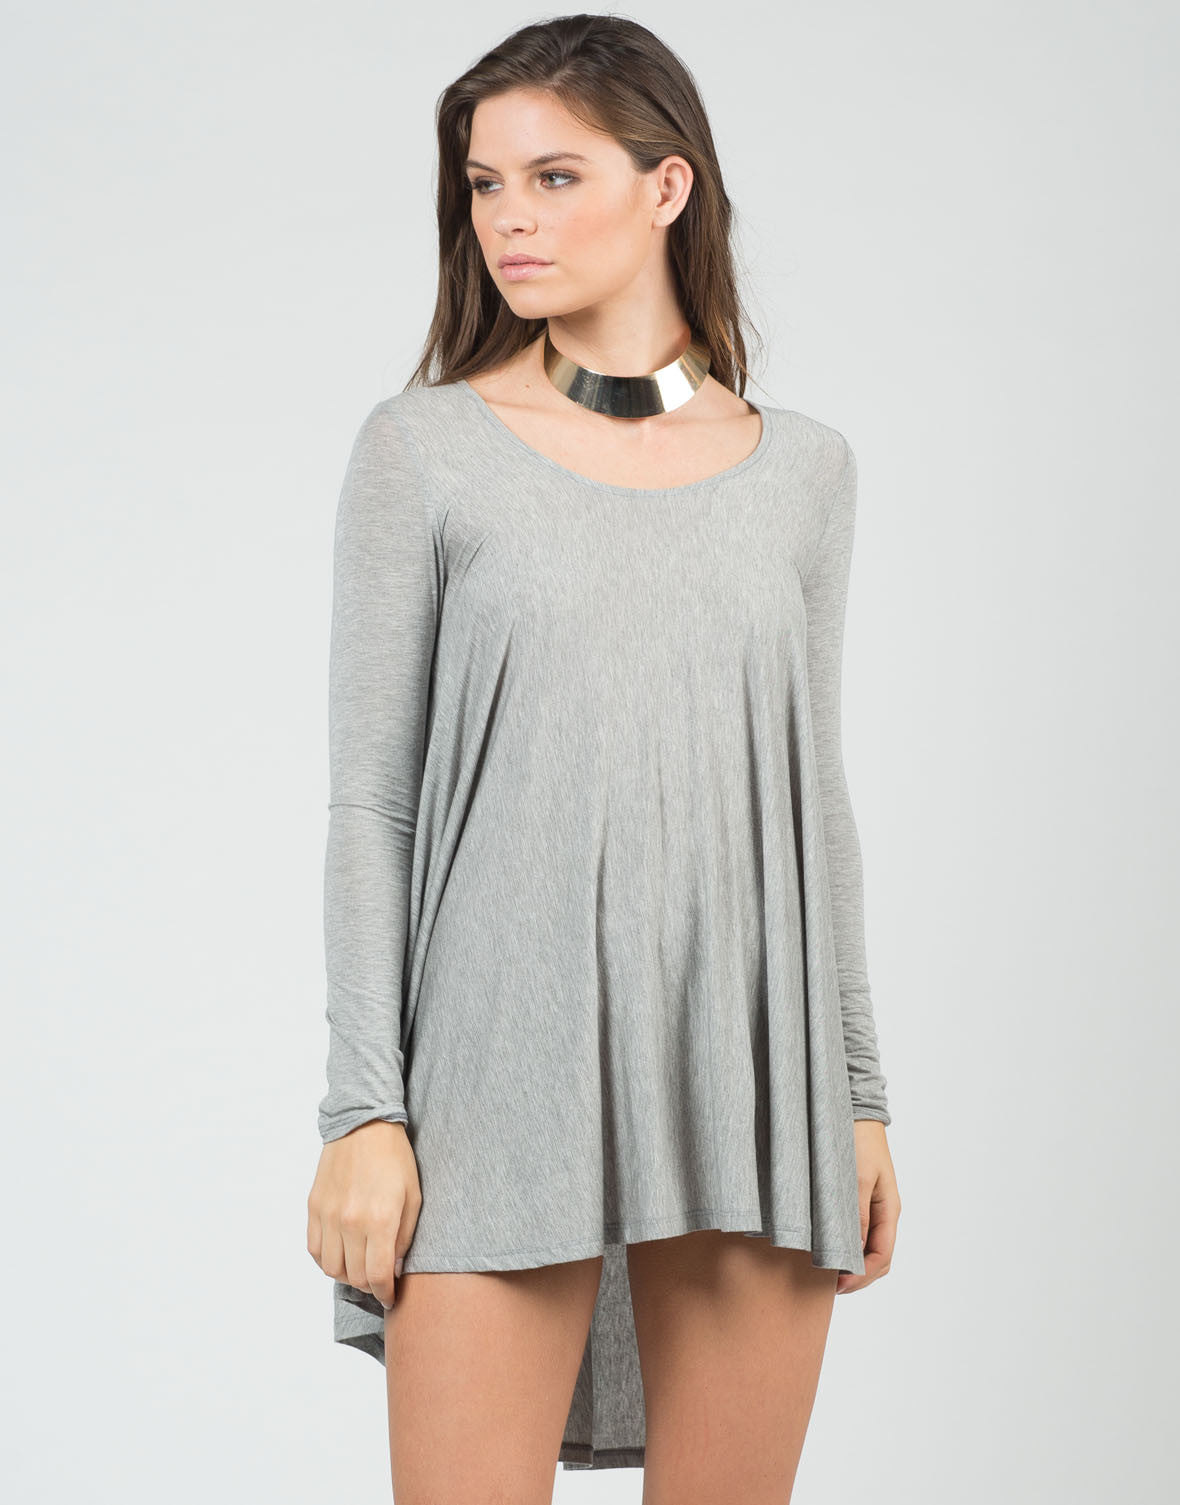 Front View of Long Sleeve Swing Top